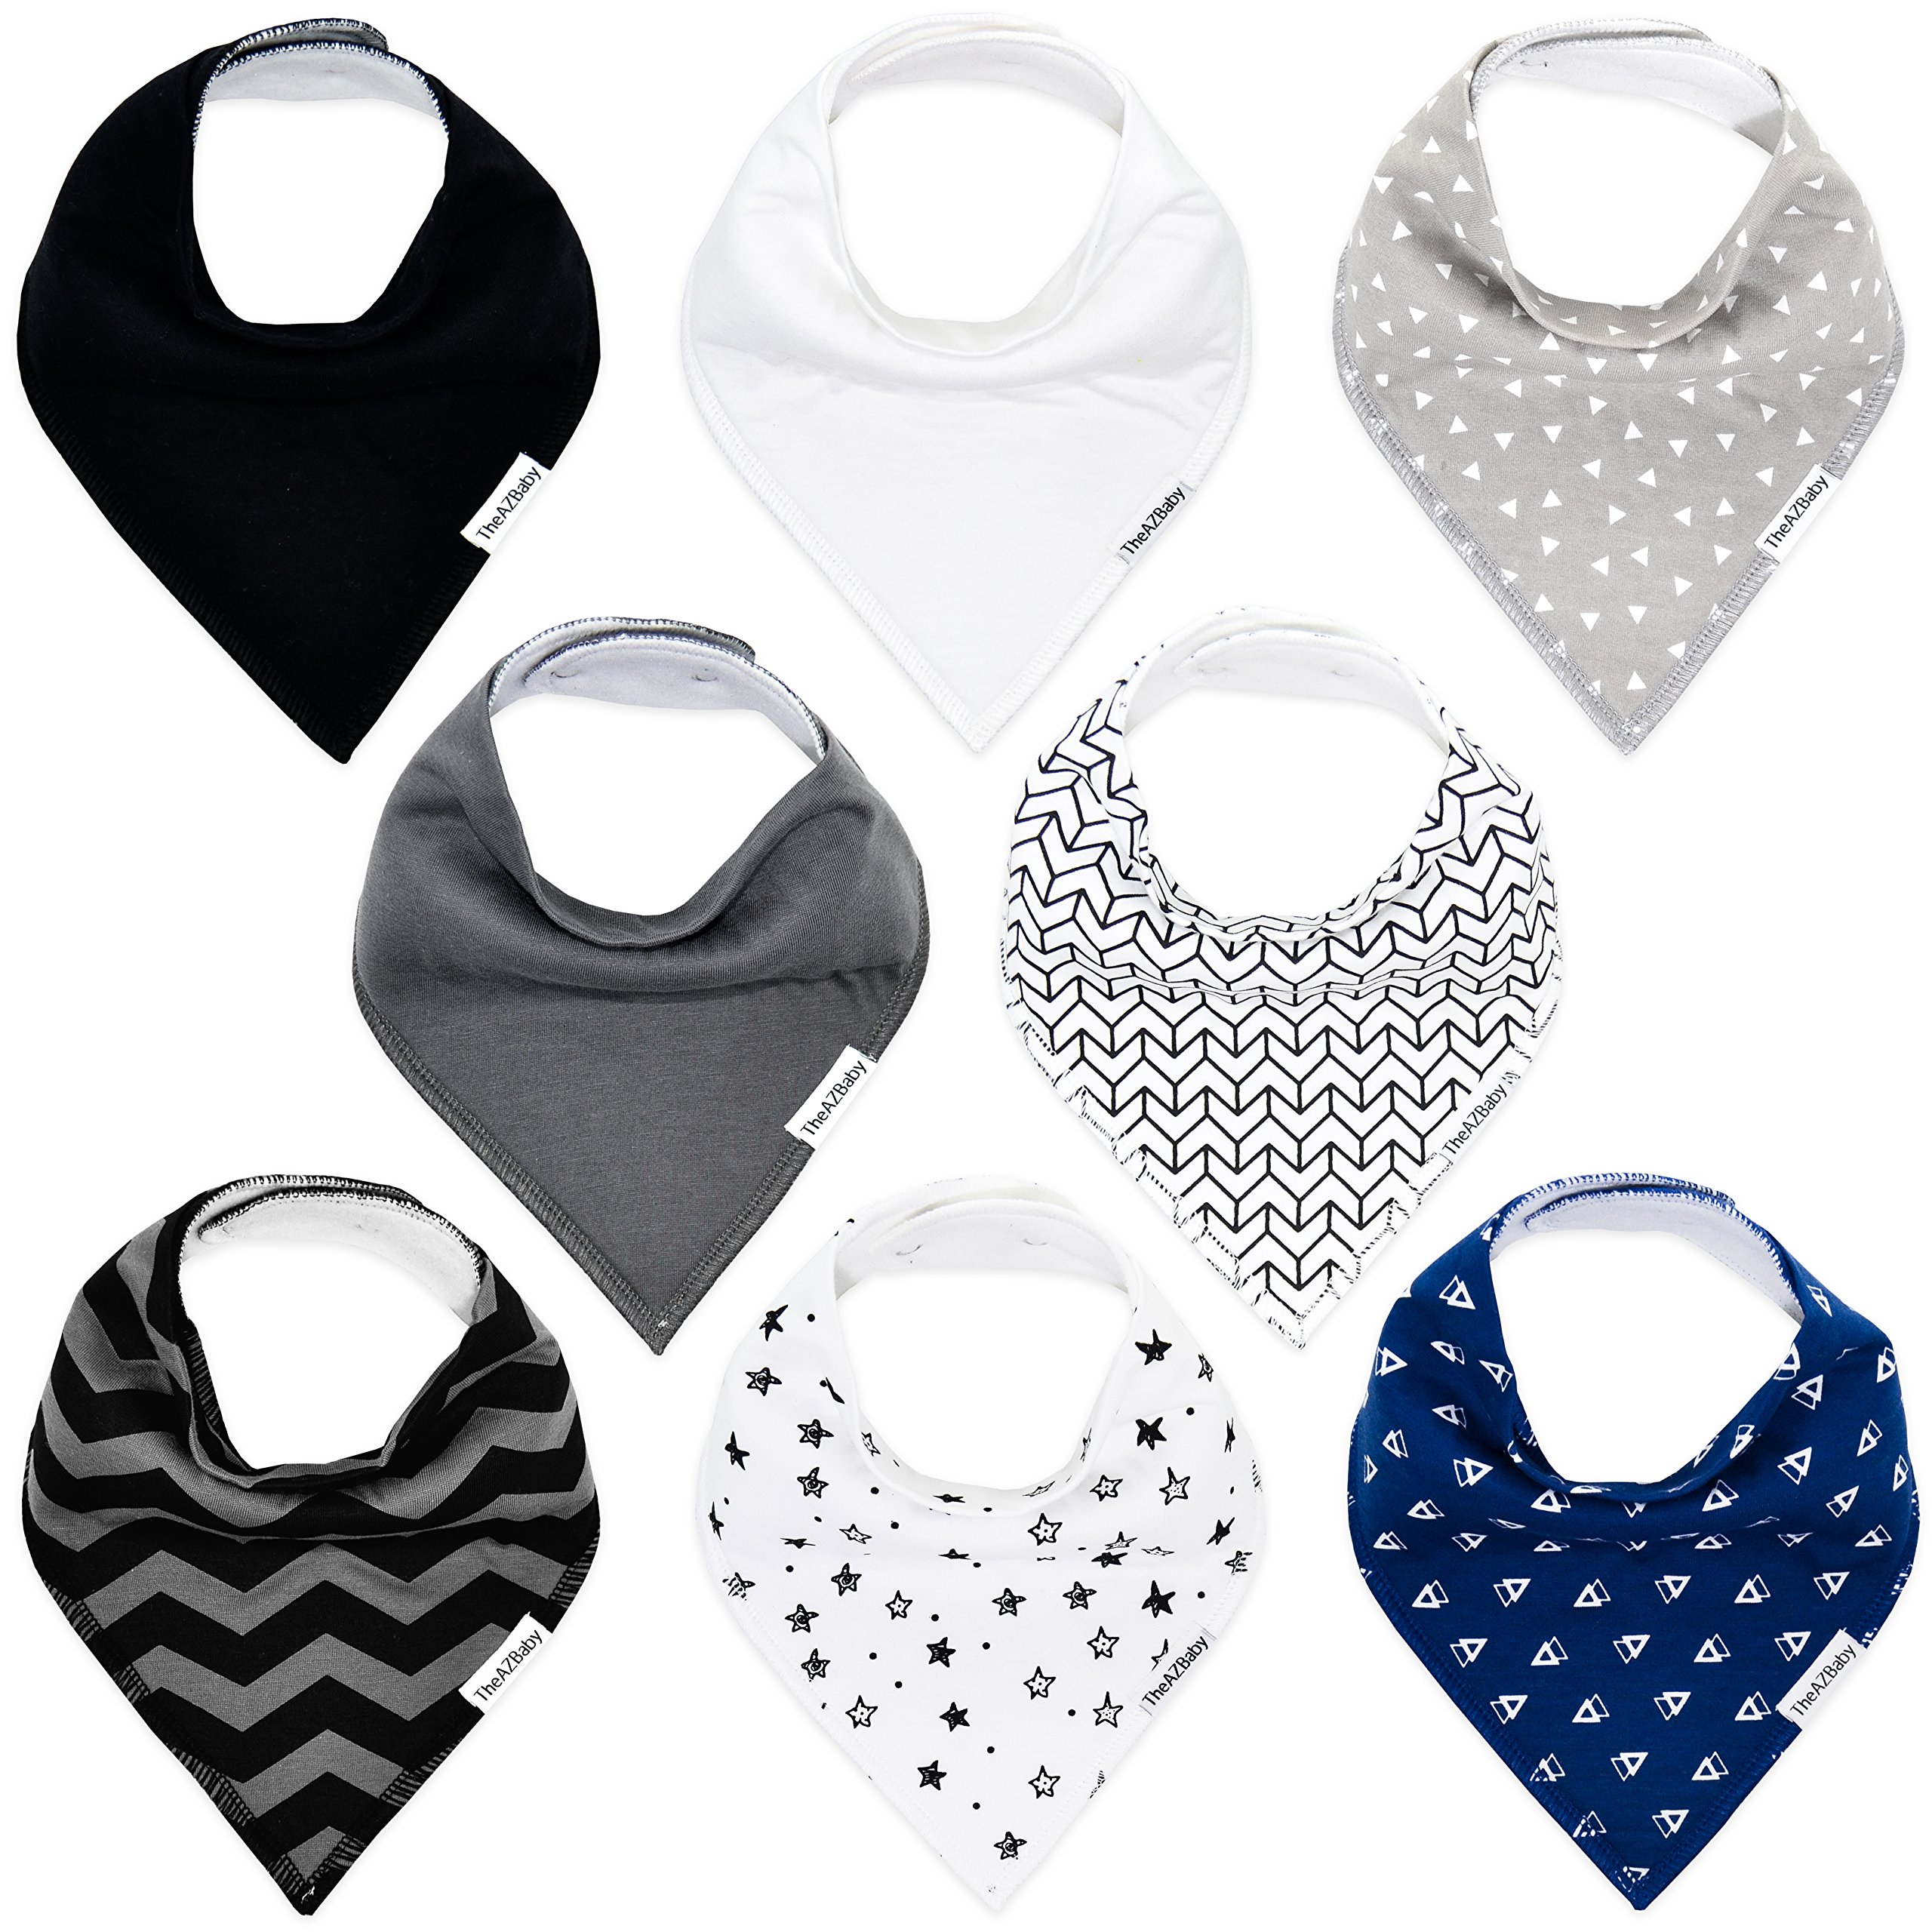 TheAZBaby Baby Bandana Drool Bibs for Boys and Girls, Organic, Plain colors, Unisex 8 Pack Baby Shower Gift Set for…